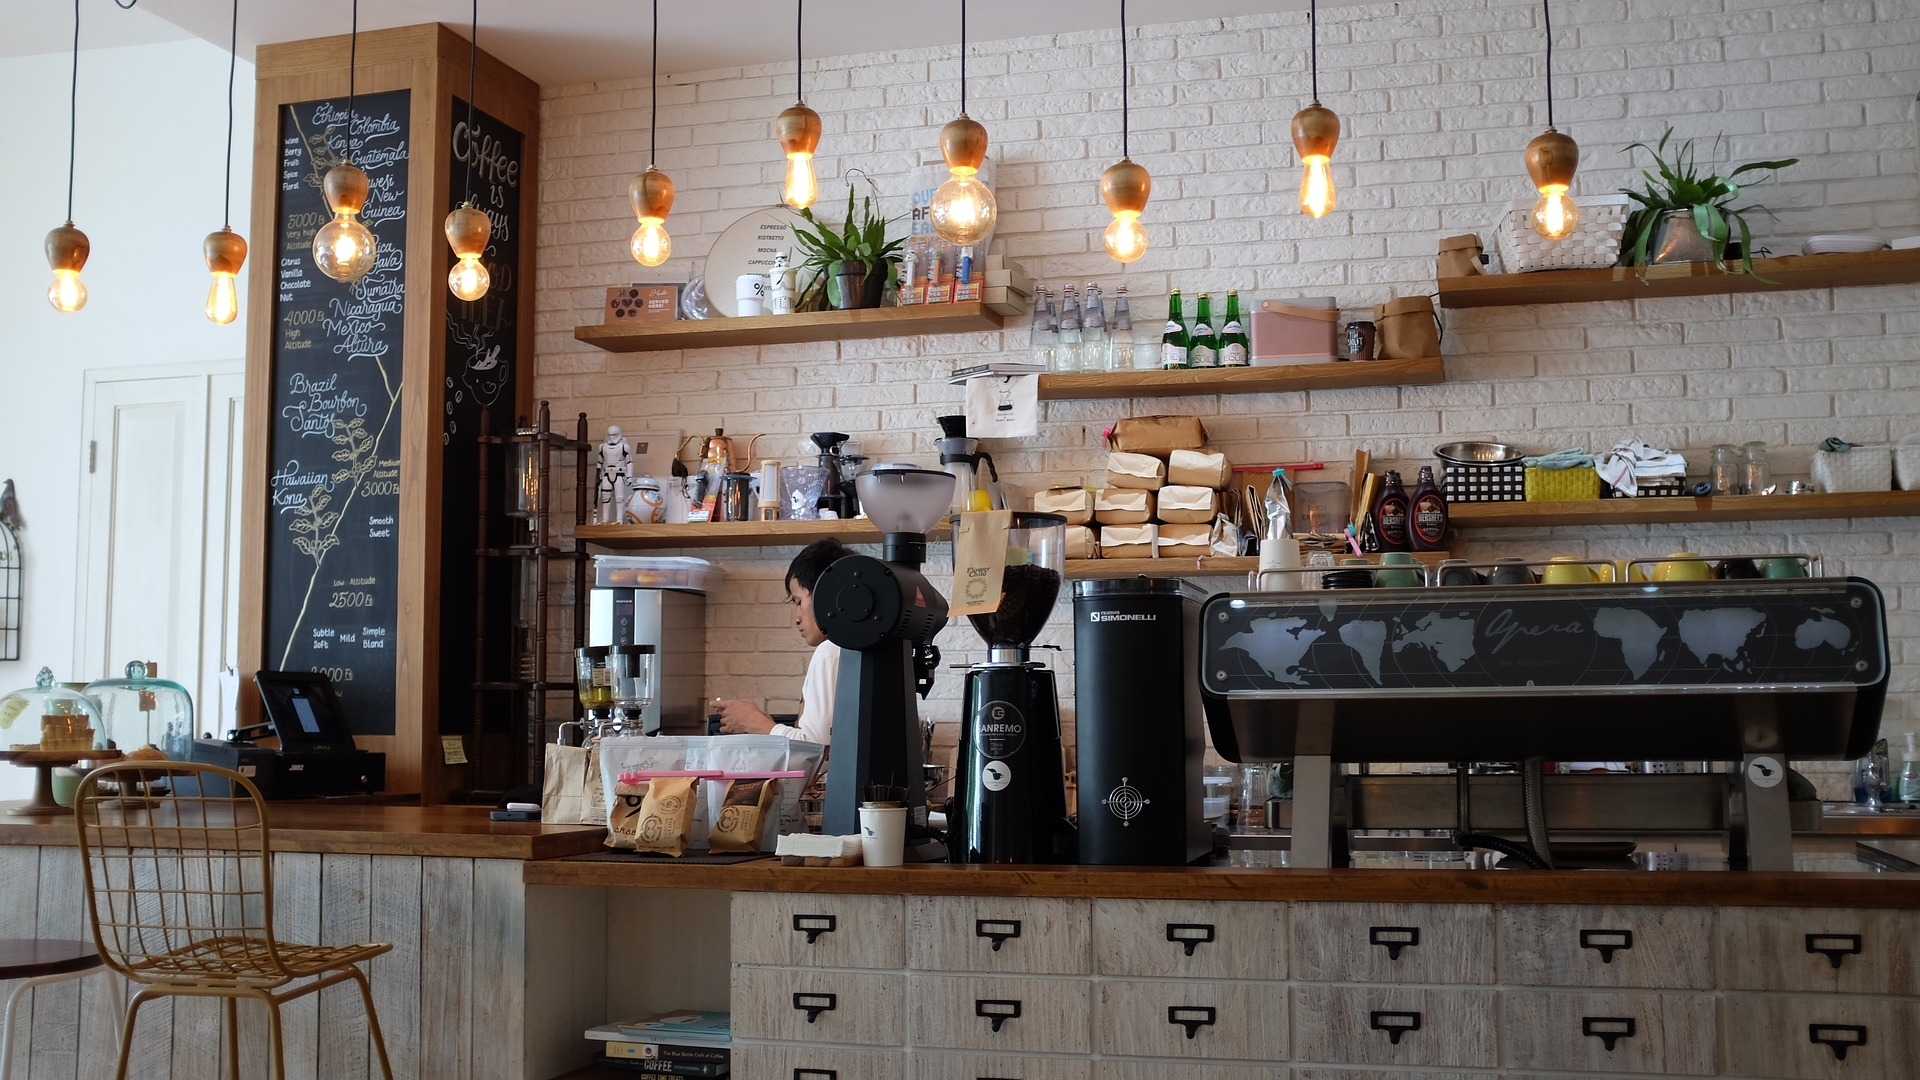 Image of a favorite local coffee shop